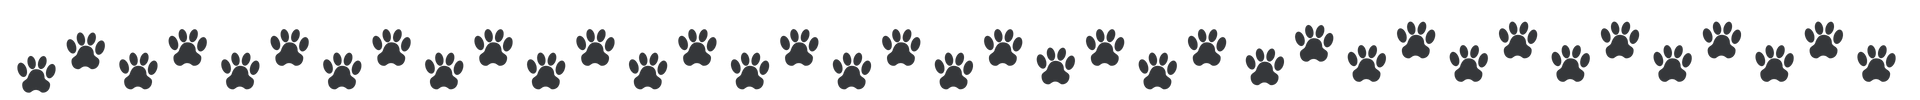 officehounds white label social media paw pattern